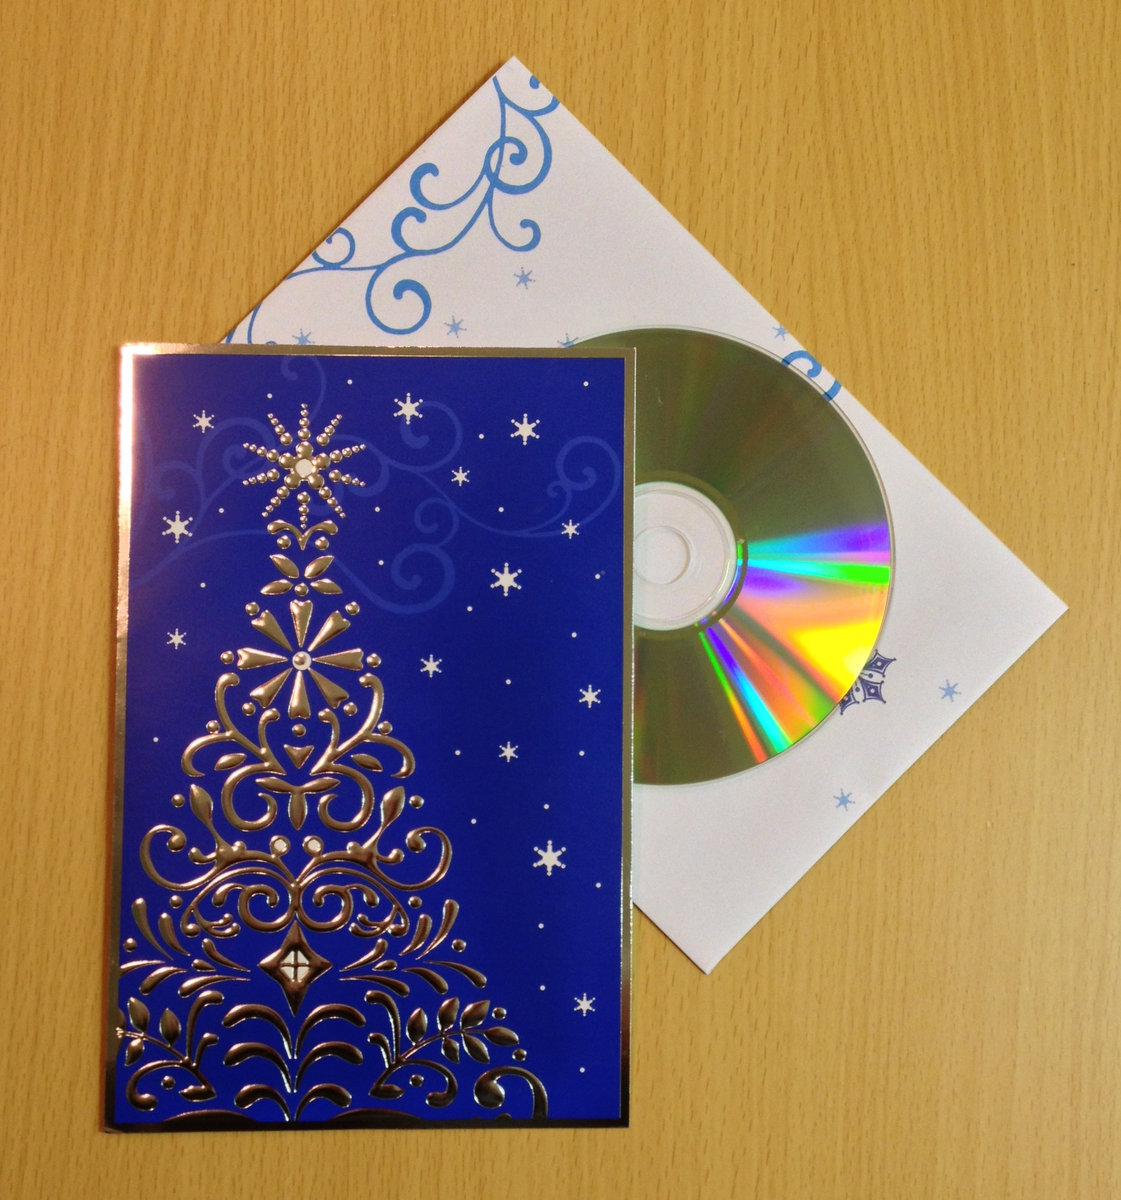 Classic christmas card ep wintersong classic christmas card cd comes packaged in a beautiful holiday greeting card with matching decorative envelope perfect for gift giving m4hsunfo